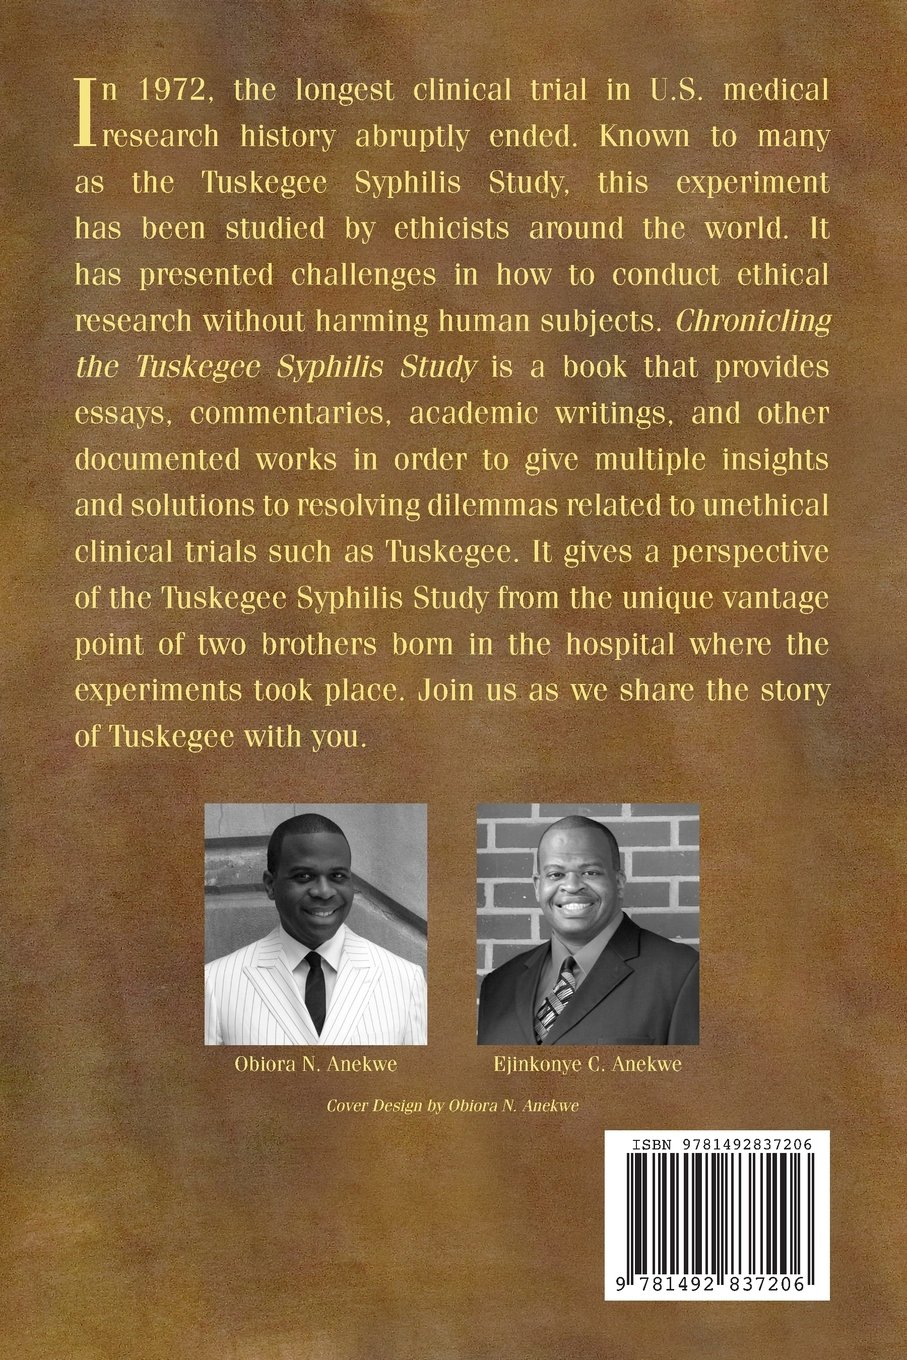 chronicling the tuskegee syphilis study essays research writings  chronicling the tuskegee syphilis study essays research writings commentaries and other documented works obiora n anekwe ed d ejinkonye c anekwe